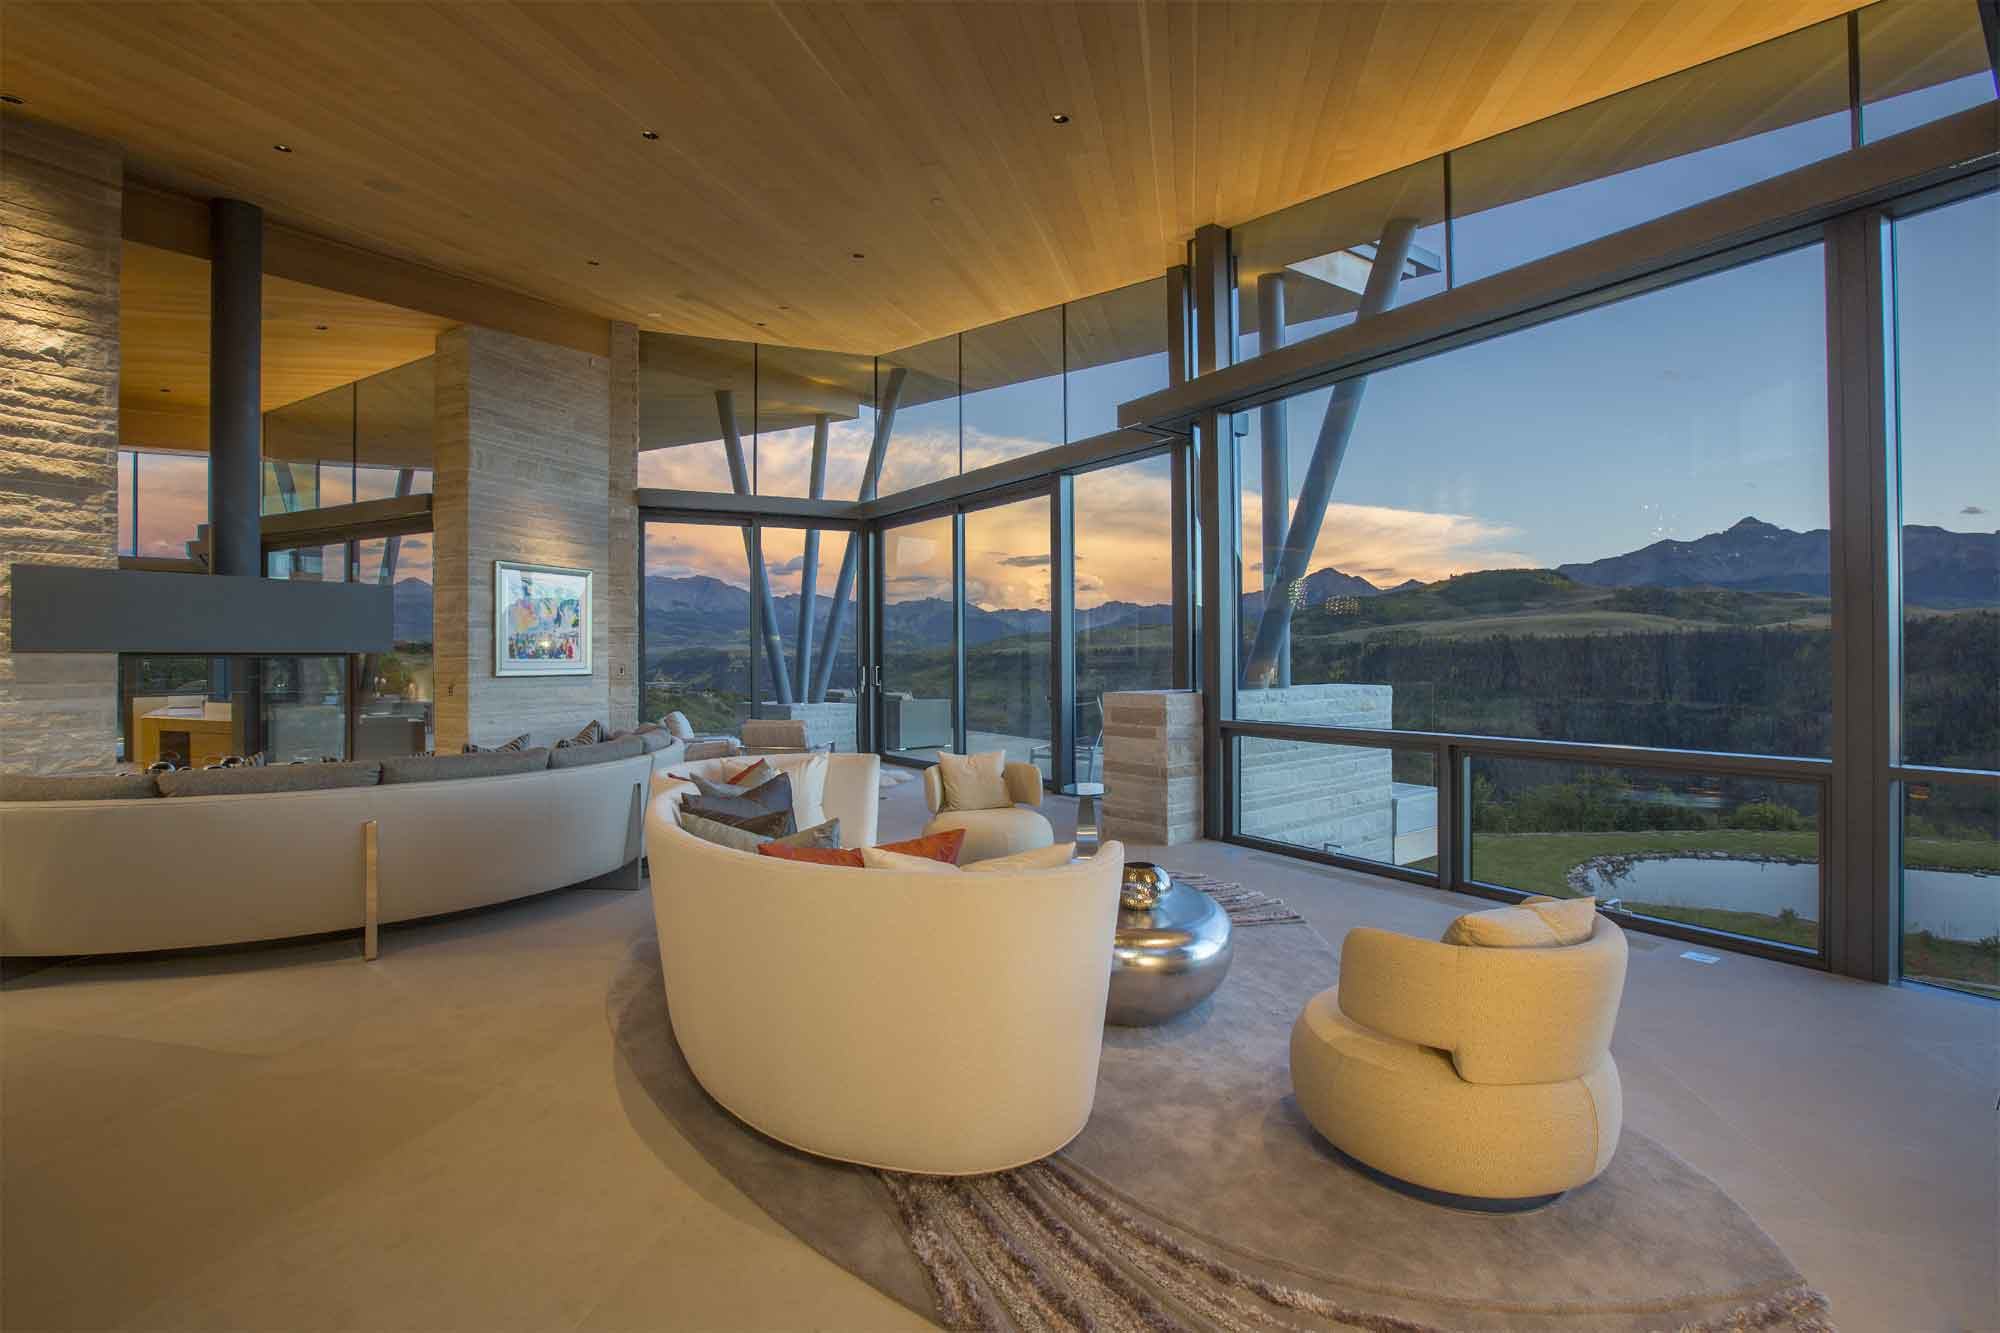 This exceptional estate with its bold use of glass and magnificent setting, minutes from the historic Old West town of Telluride, is the epitome of luxurious mountain living.